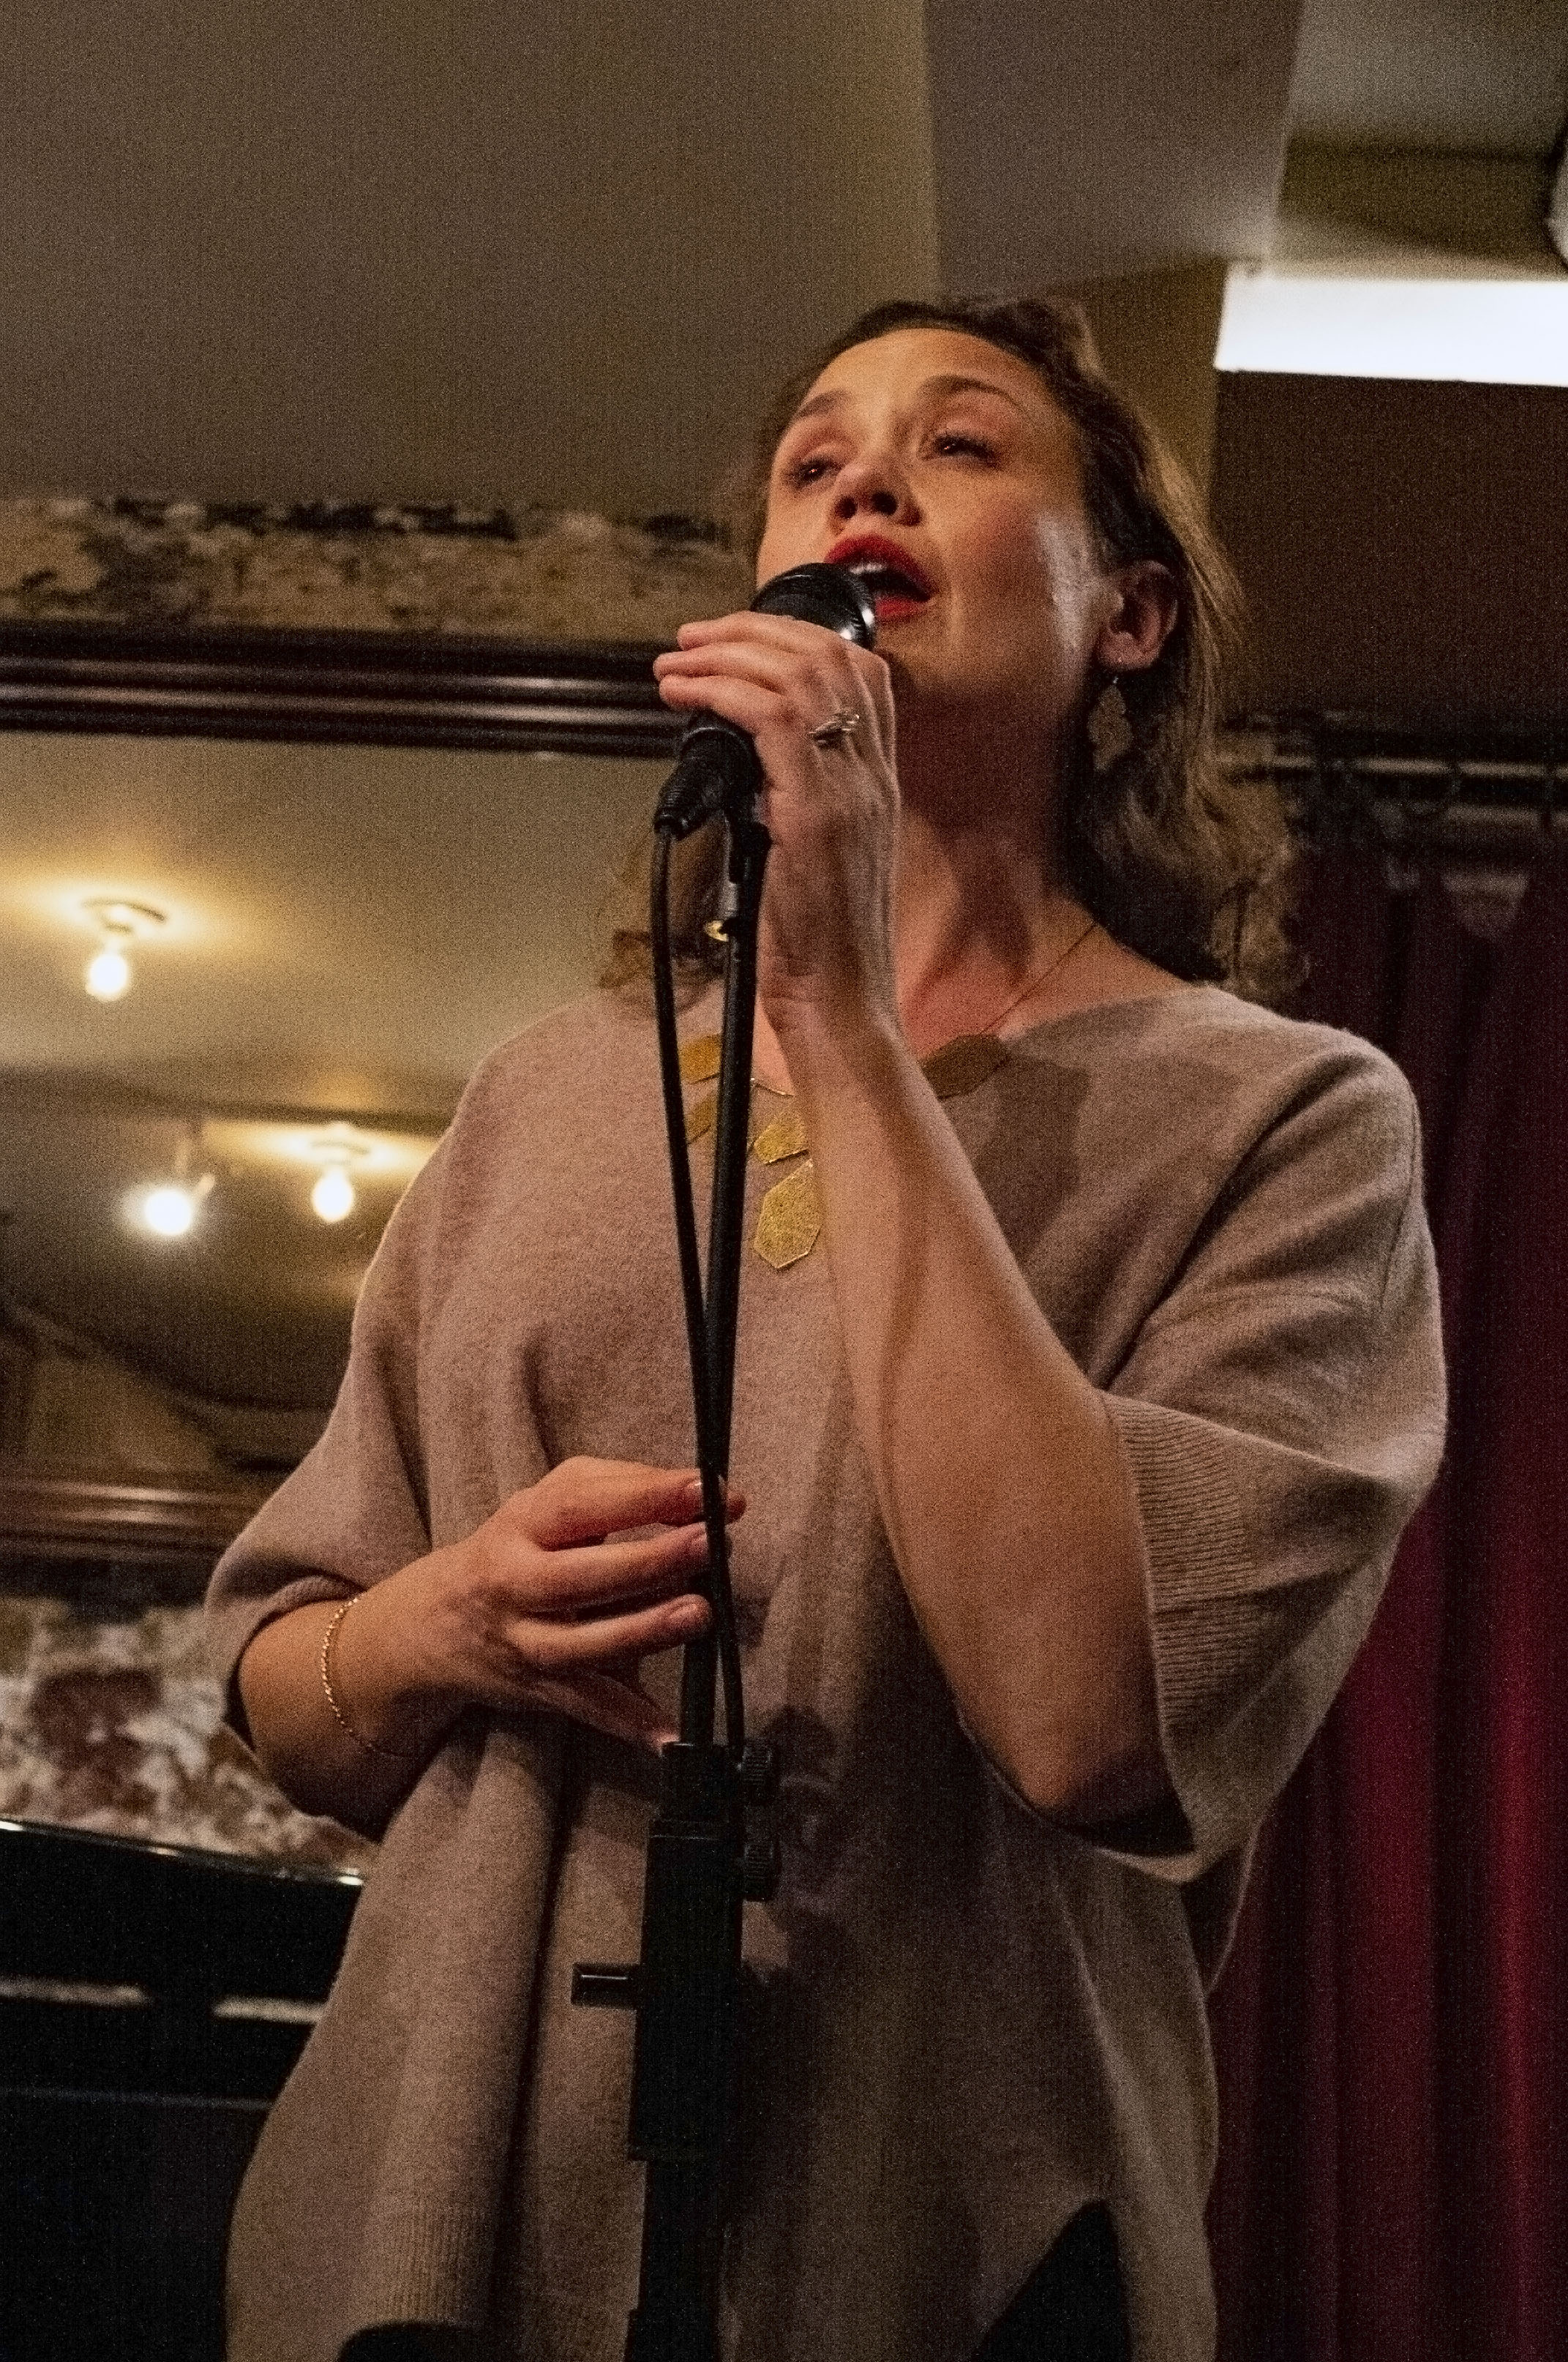 Hilary Gardner & Ehud Asherie at Mezzrow, January 29, 2019